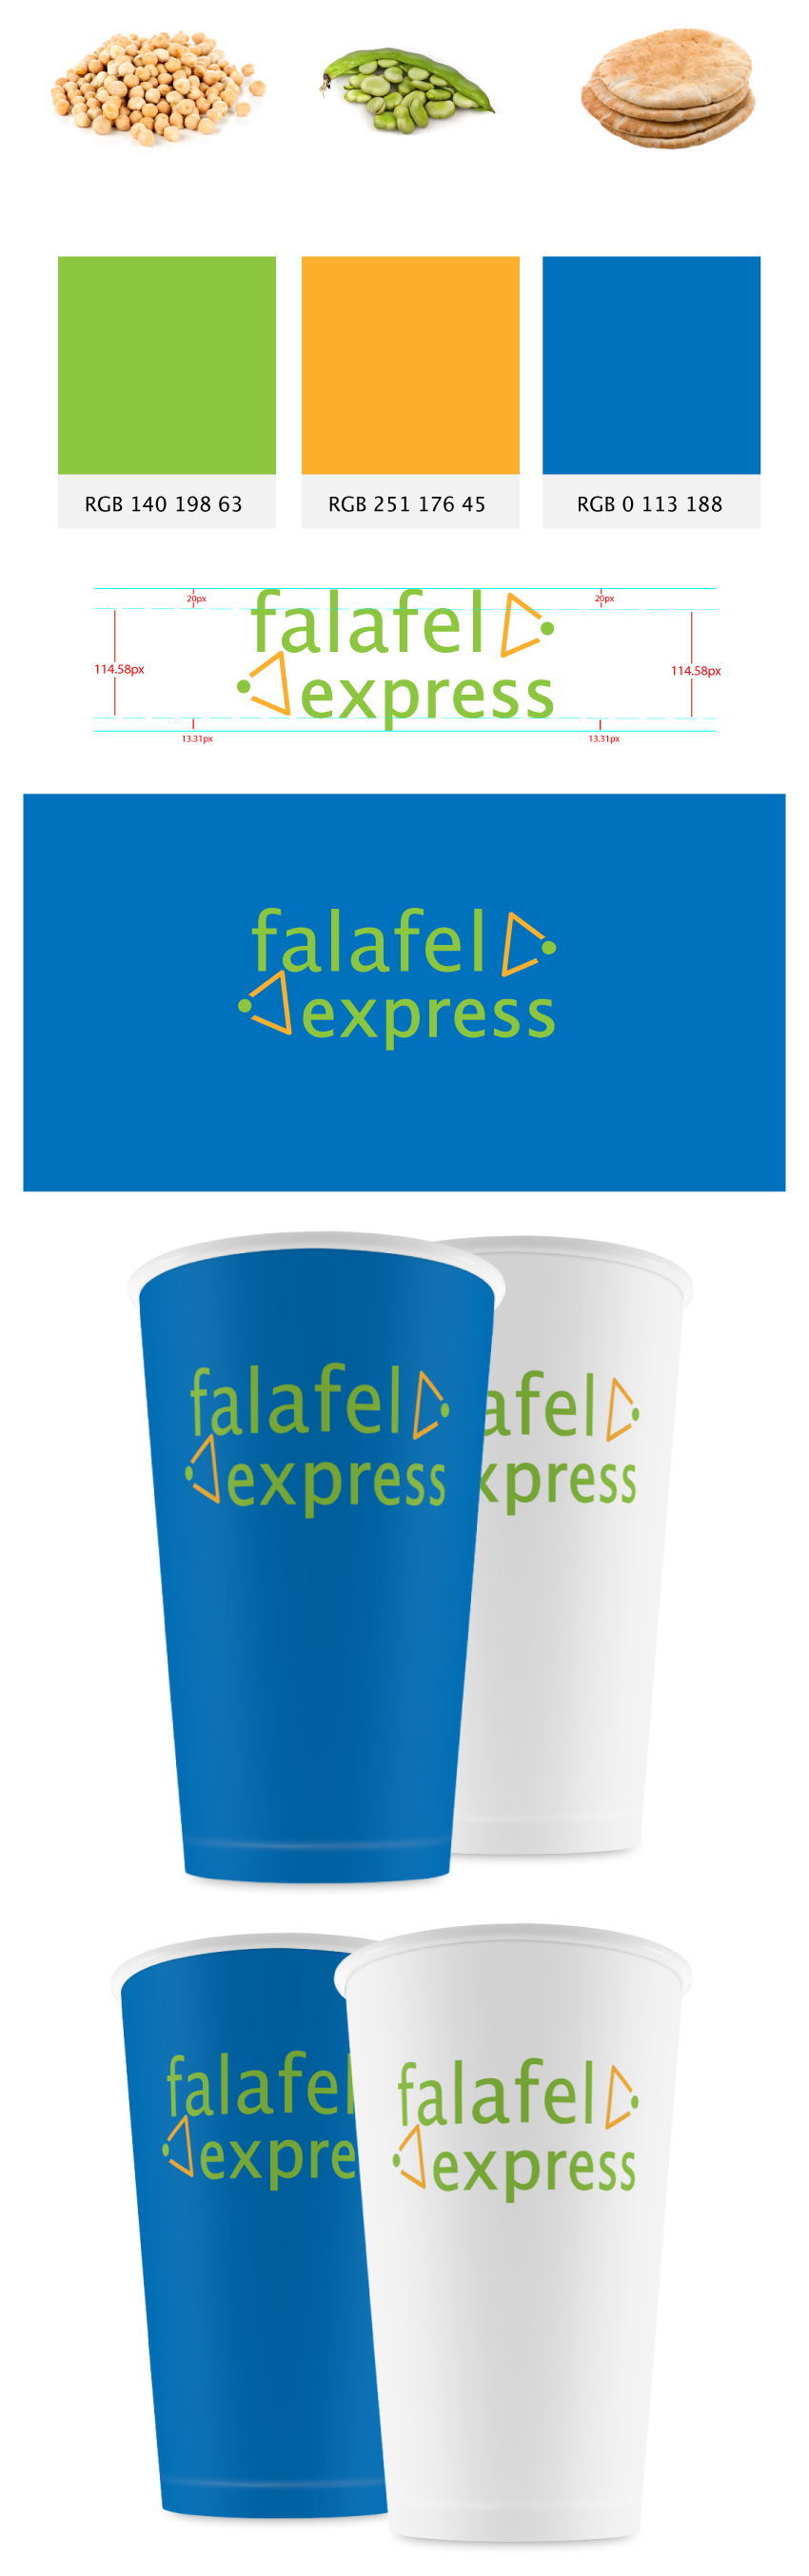 falafel-express-logo-portfolio-single-image